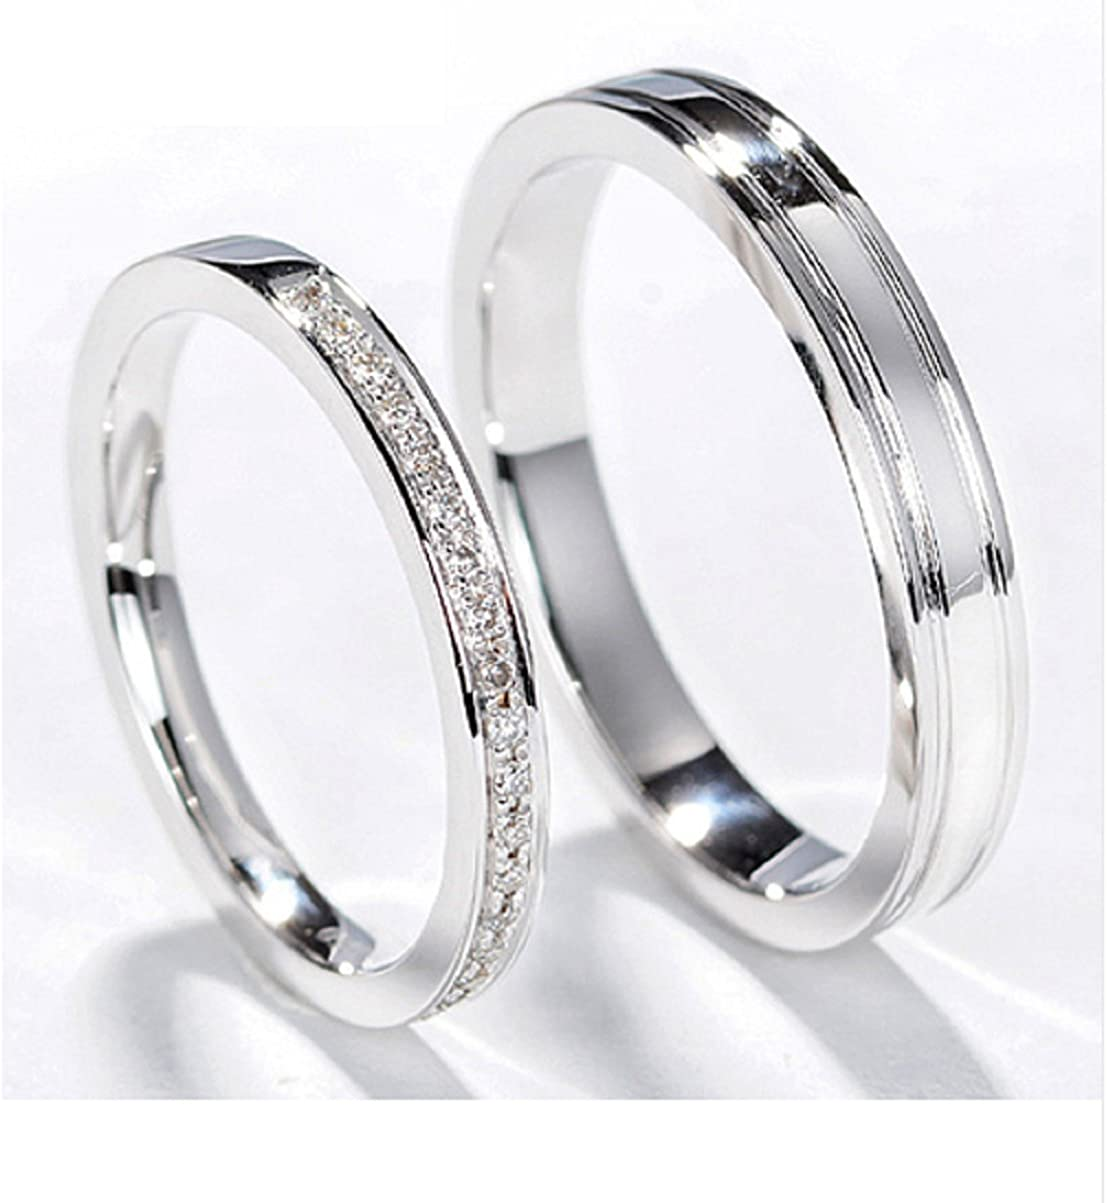 Amazon Com Gowe Classic Natural Diamond Couple Rings Men Women Wedding Ring 18k White Gold Jewelry